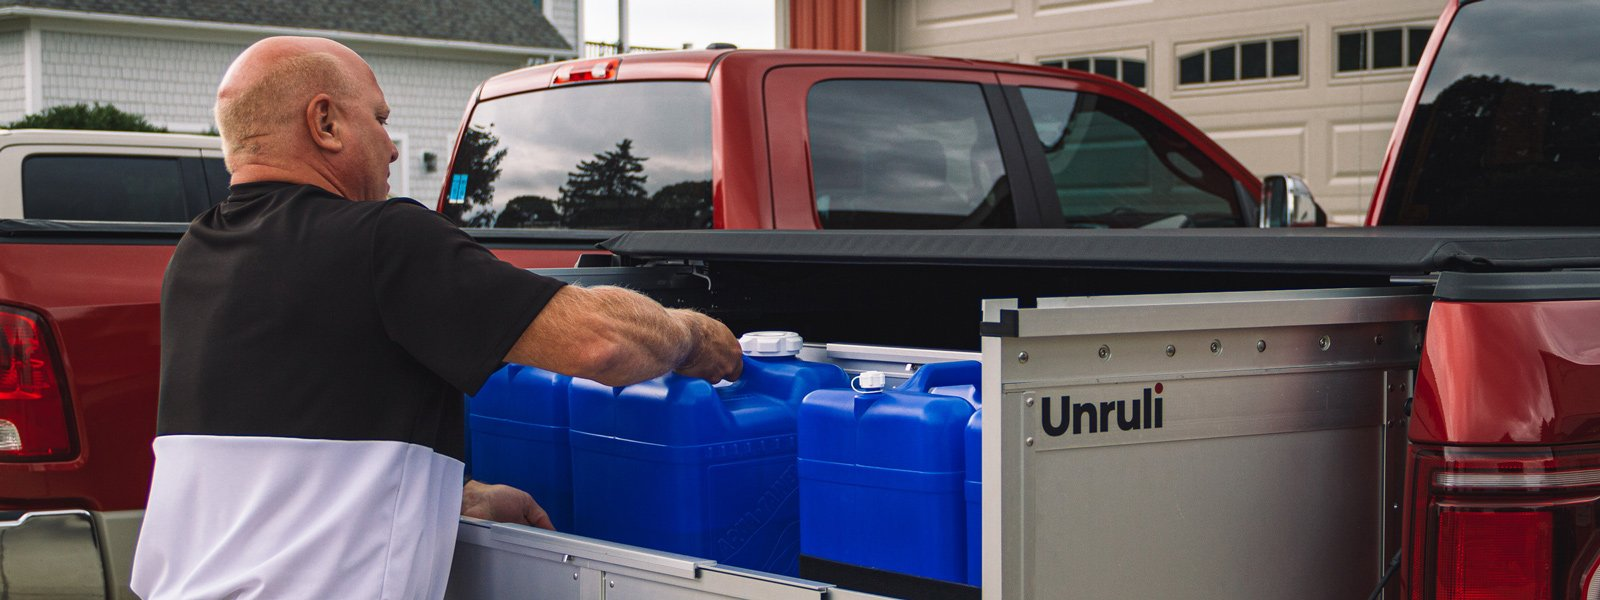 pickup truck cargo box with water jugs and straps